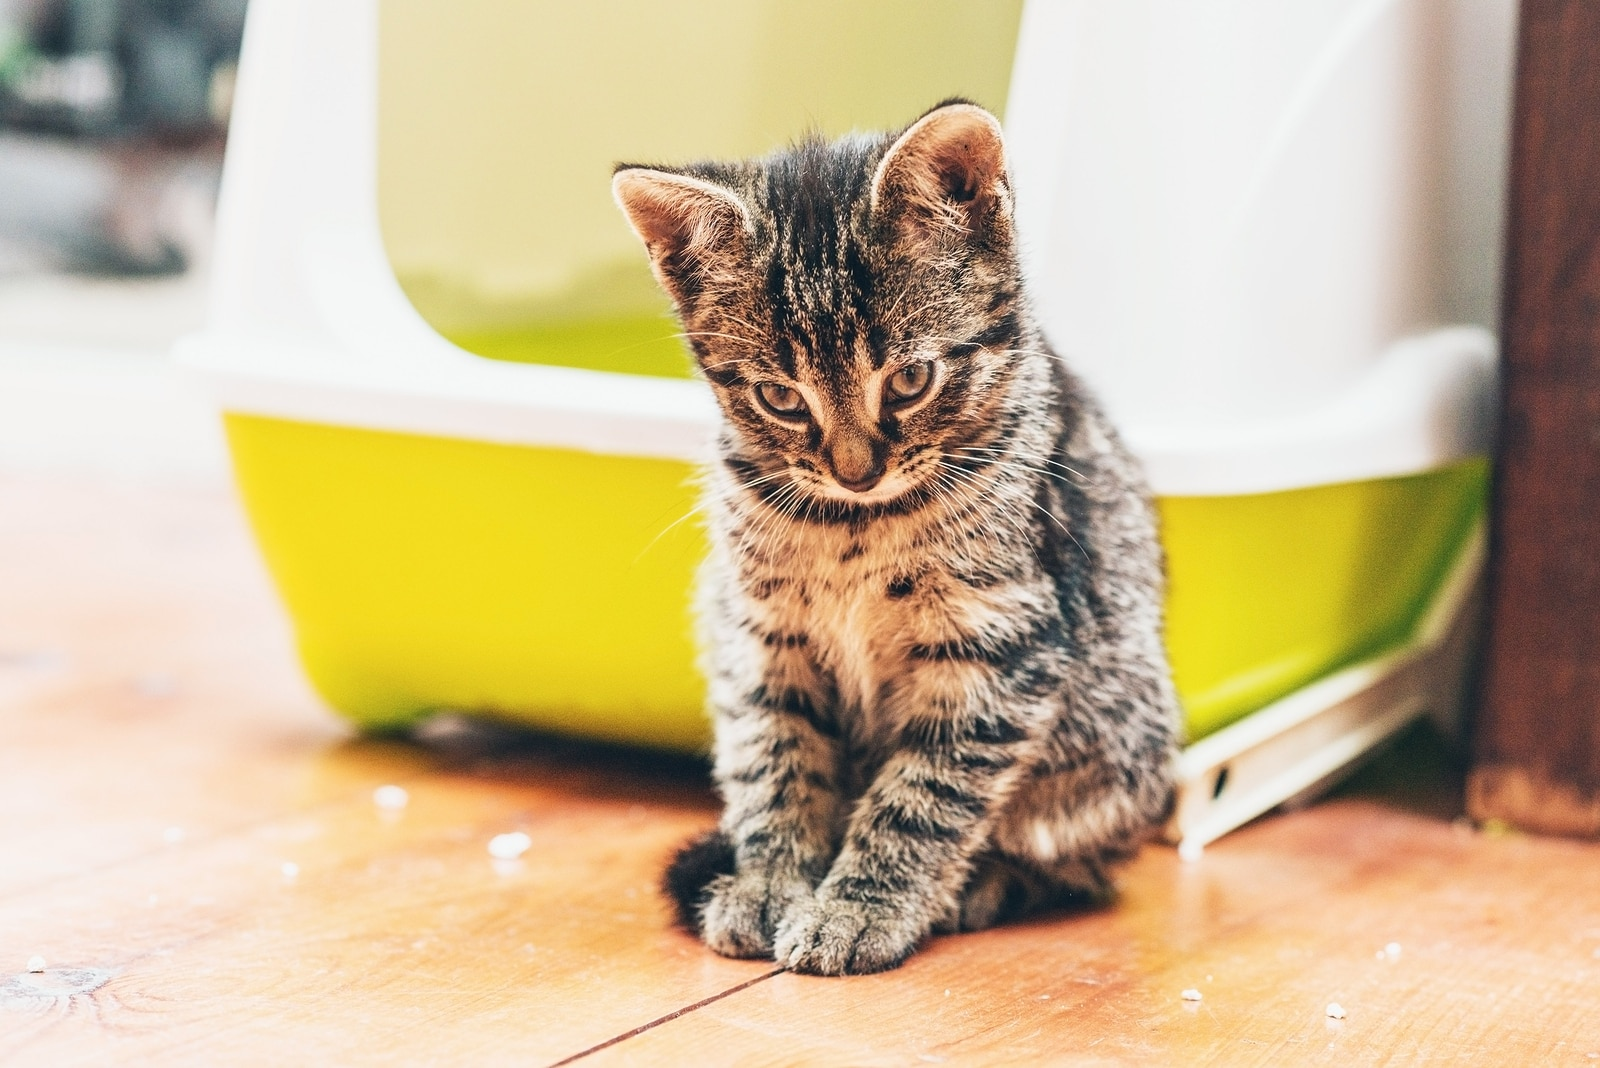 Tabby kitten with head bowed sits in front of a yellow enclosed litter box.